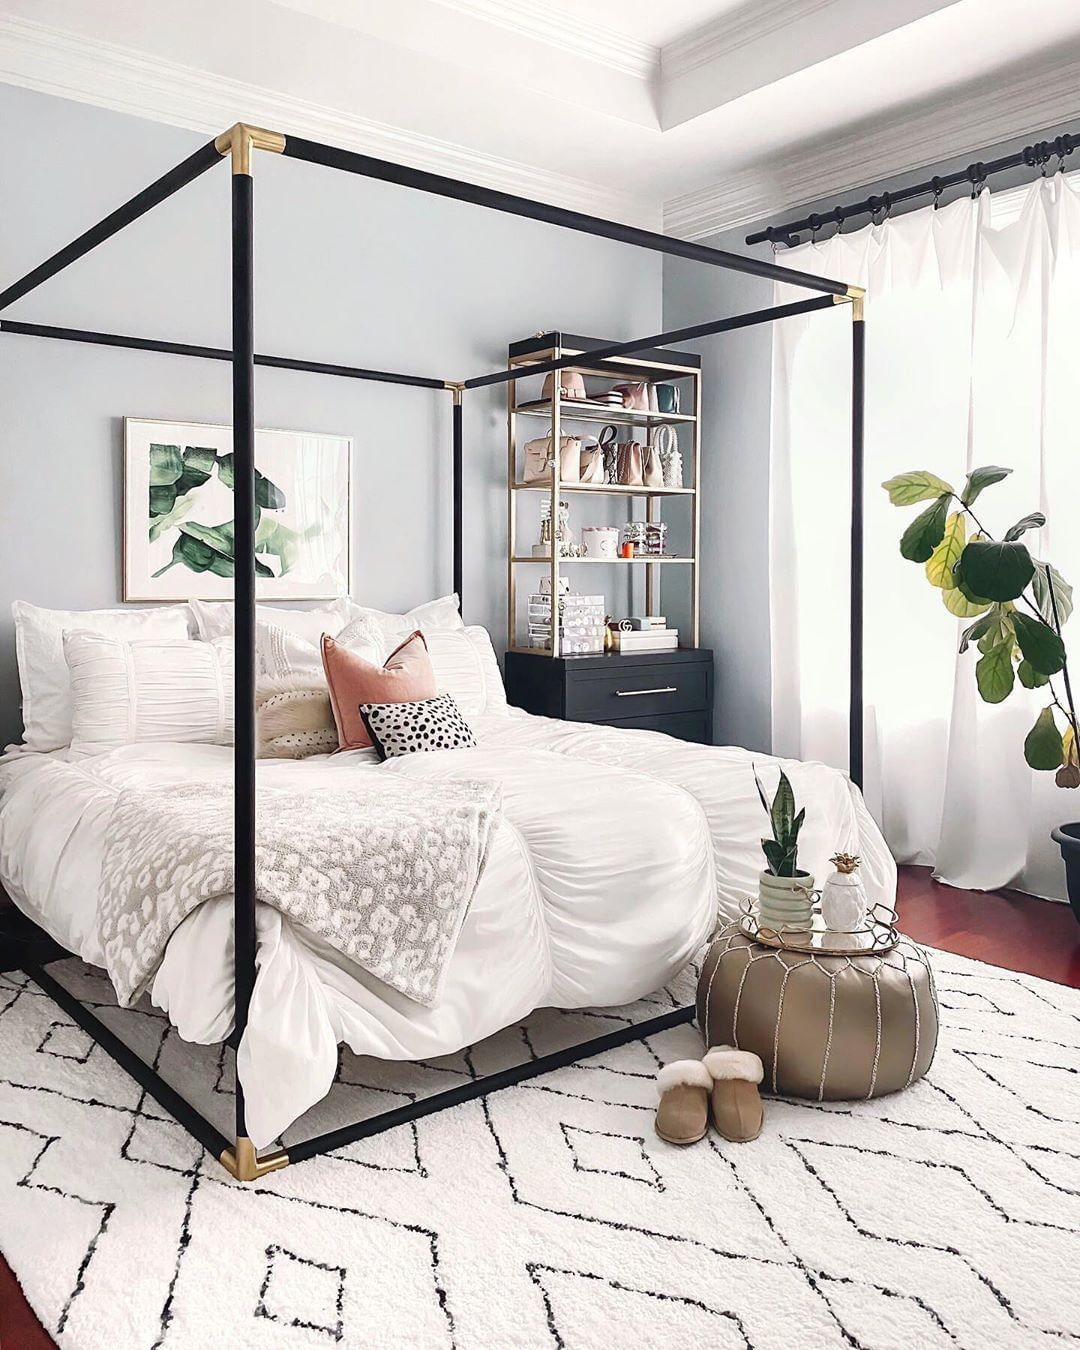 Dreamy canopy bedroom by @krystal.faircloth. Canopy beds have been trending for decades, and it seems they will always be in style. Click the image to try our free home design app.  (Keywords: bedroom ideas, bedroom decor, master bedroom ideas, boho bedroom, dream rooms, DIY home decor, small bedroom ideas, bedroom rug, aesthetic bedroom, bedroom wall art, apartment bedroom decor)